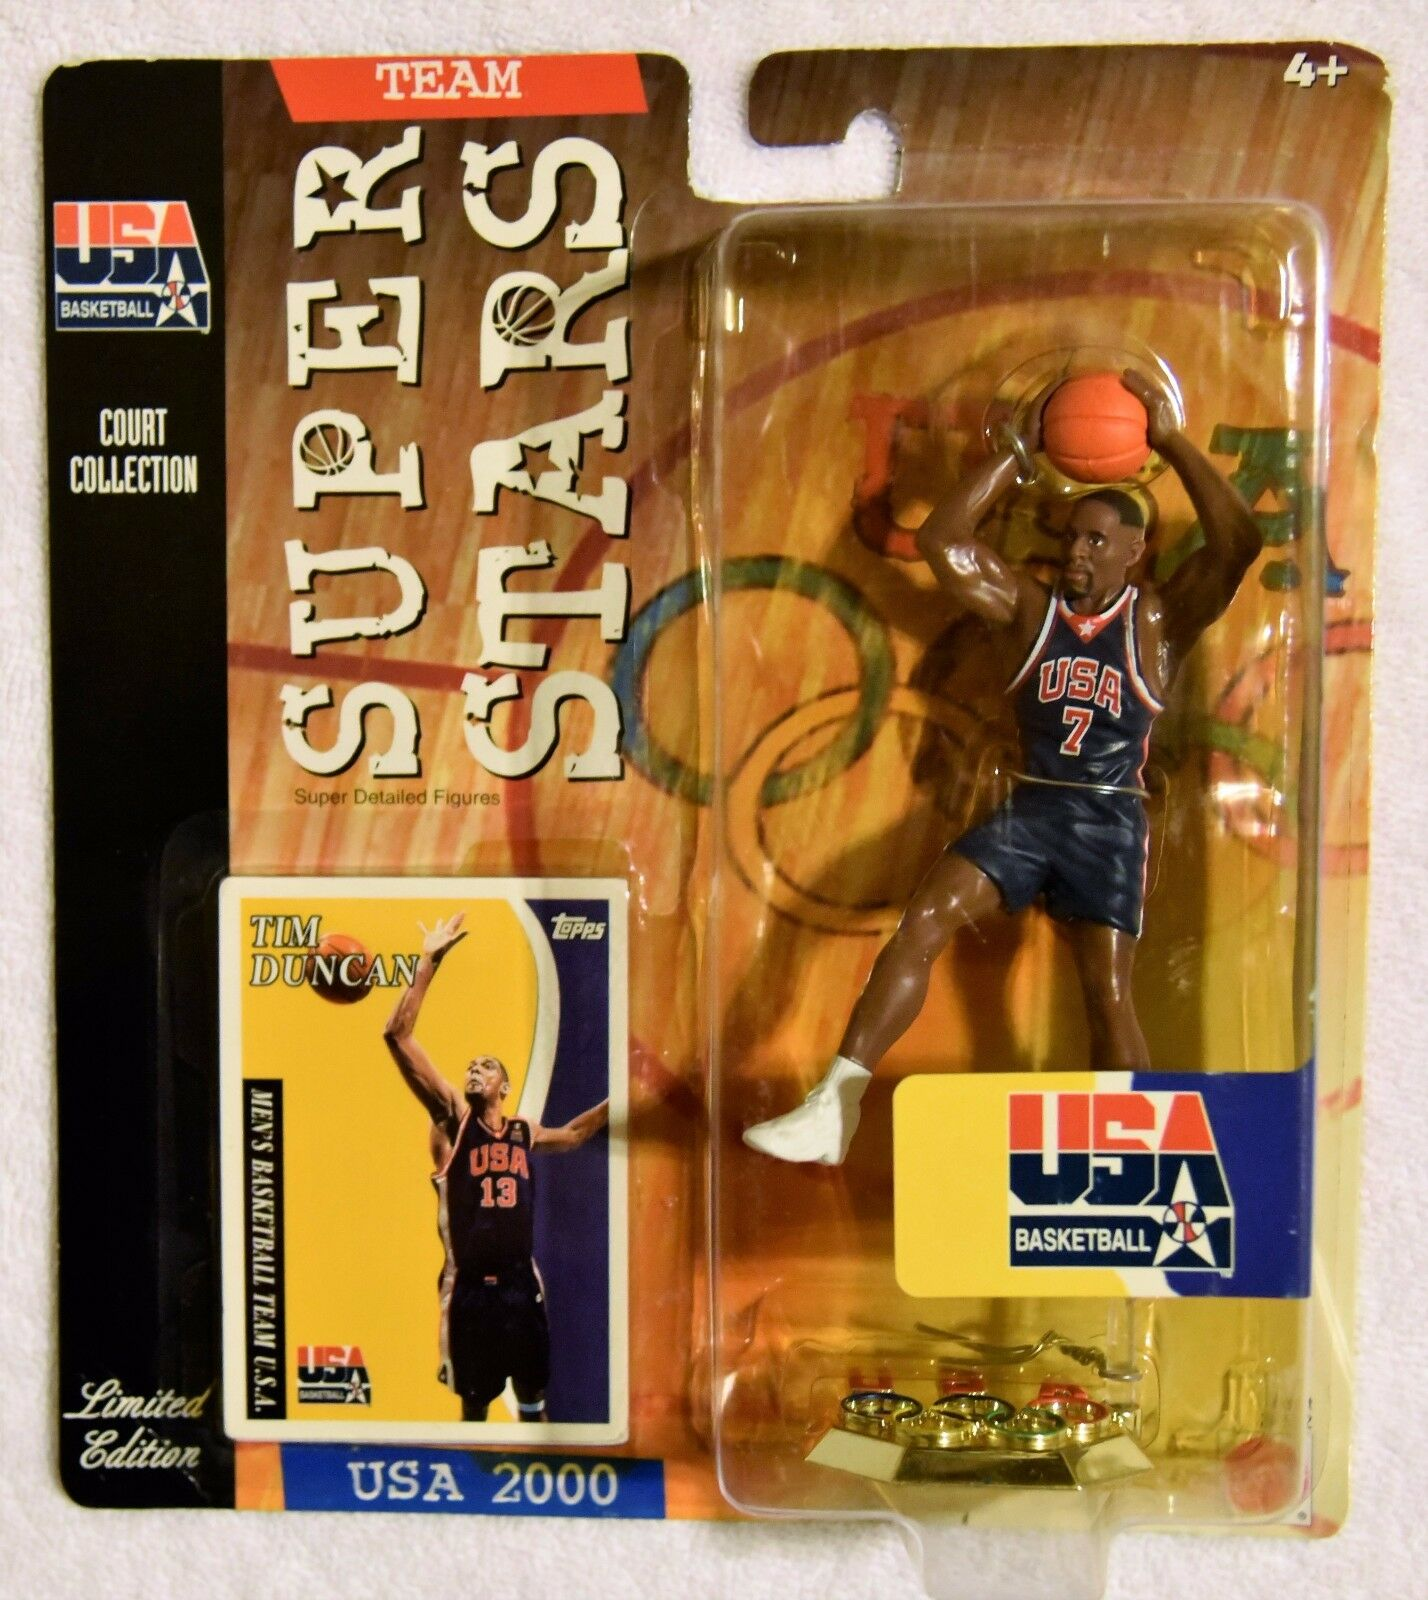 USA Basketball 2000 ALONZO MOURNING w/ Tim Duncan Card Limited Edition Gelbing